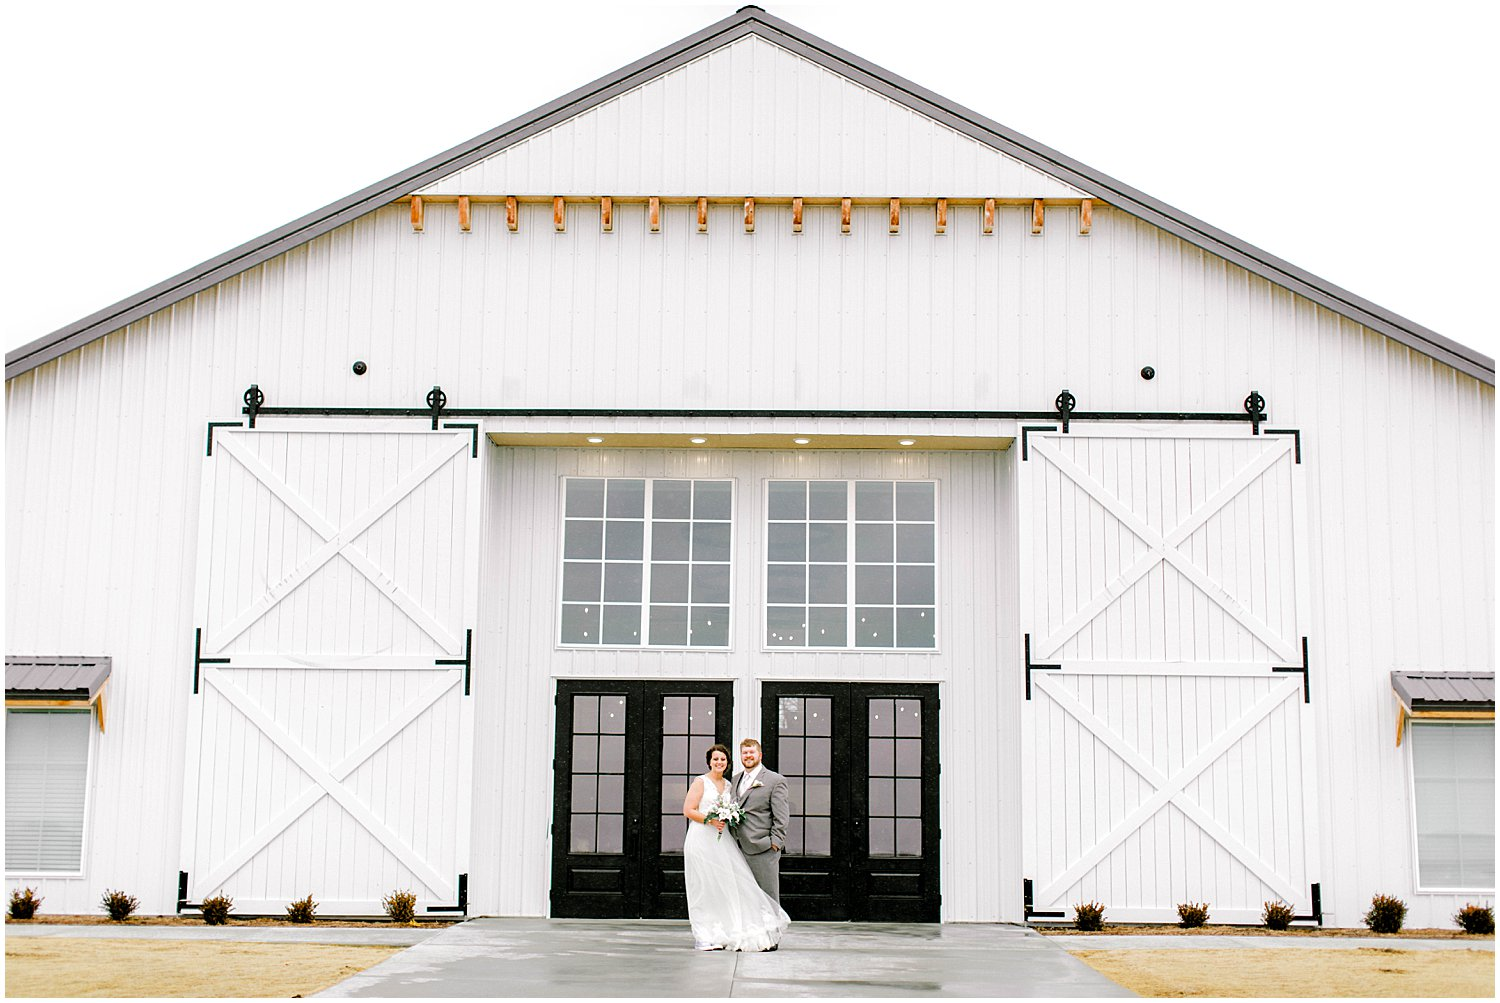 The Barn at Grace Hill Wedding, Kansas Wedding Photographer, Wichita Kansas Wedding Photographer, barn wedding, traditional wedding, wedding photography, wedding inspiration, unique wedding photos, barn venue, husband and wife portraits, bride and groom photos